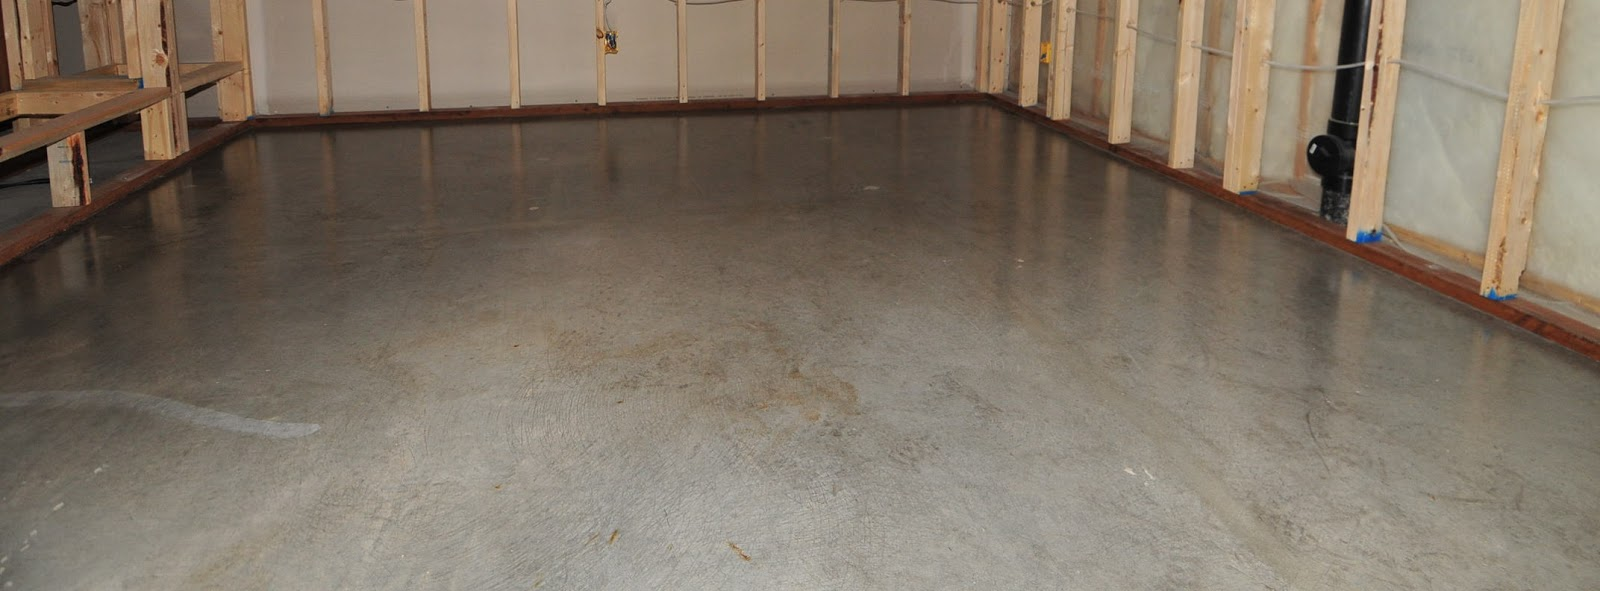 Mode Concrete Cool And Modern Bat Floors Naturally